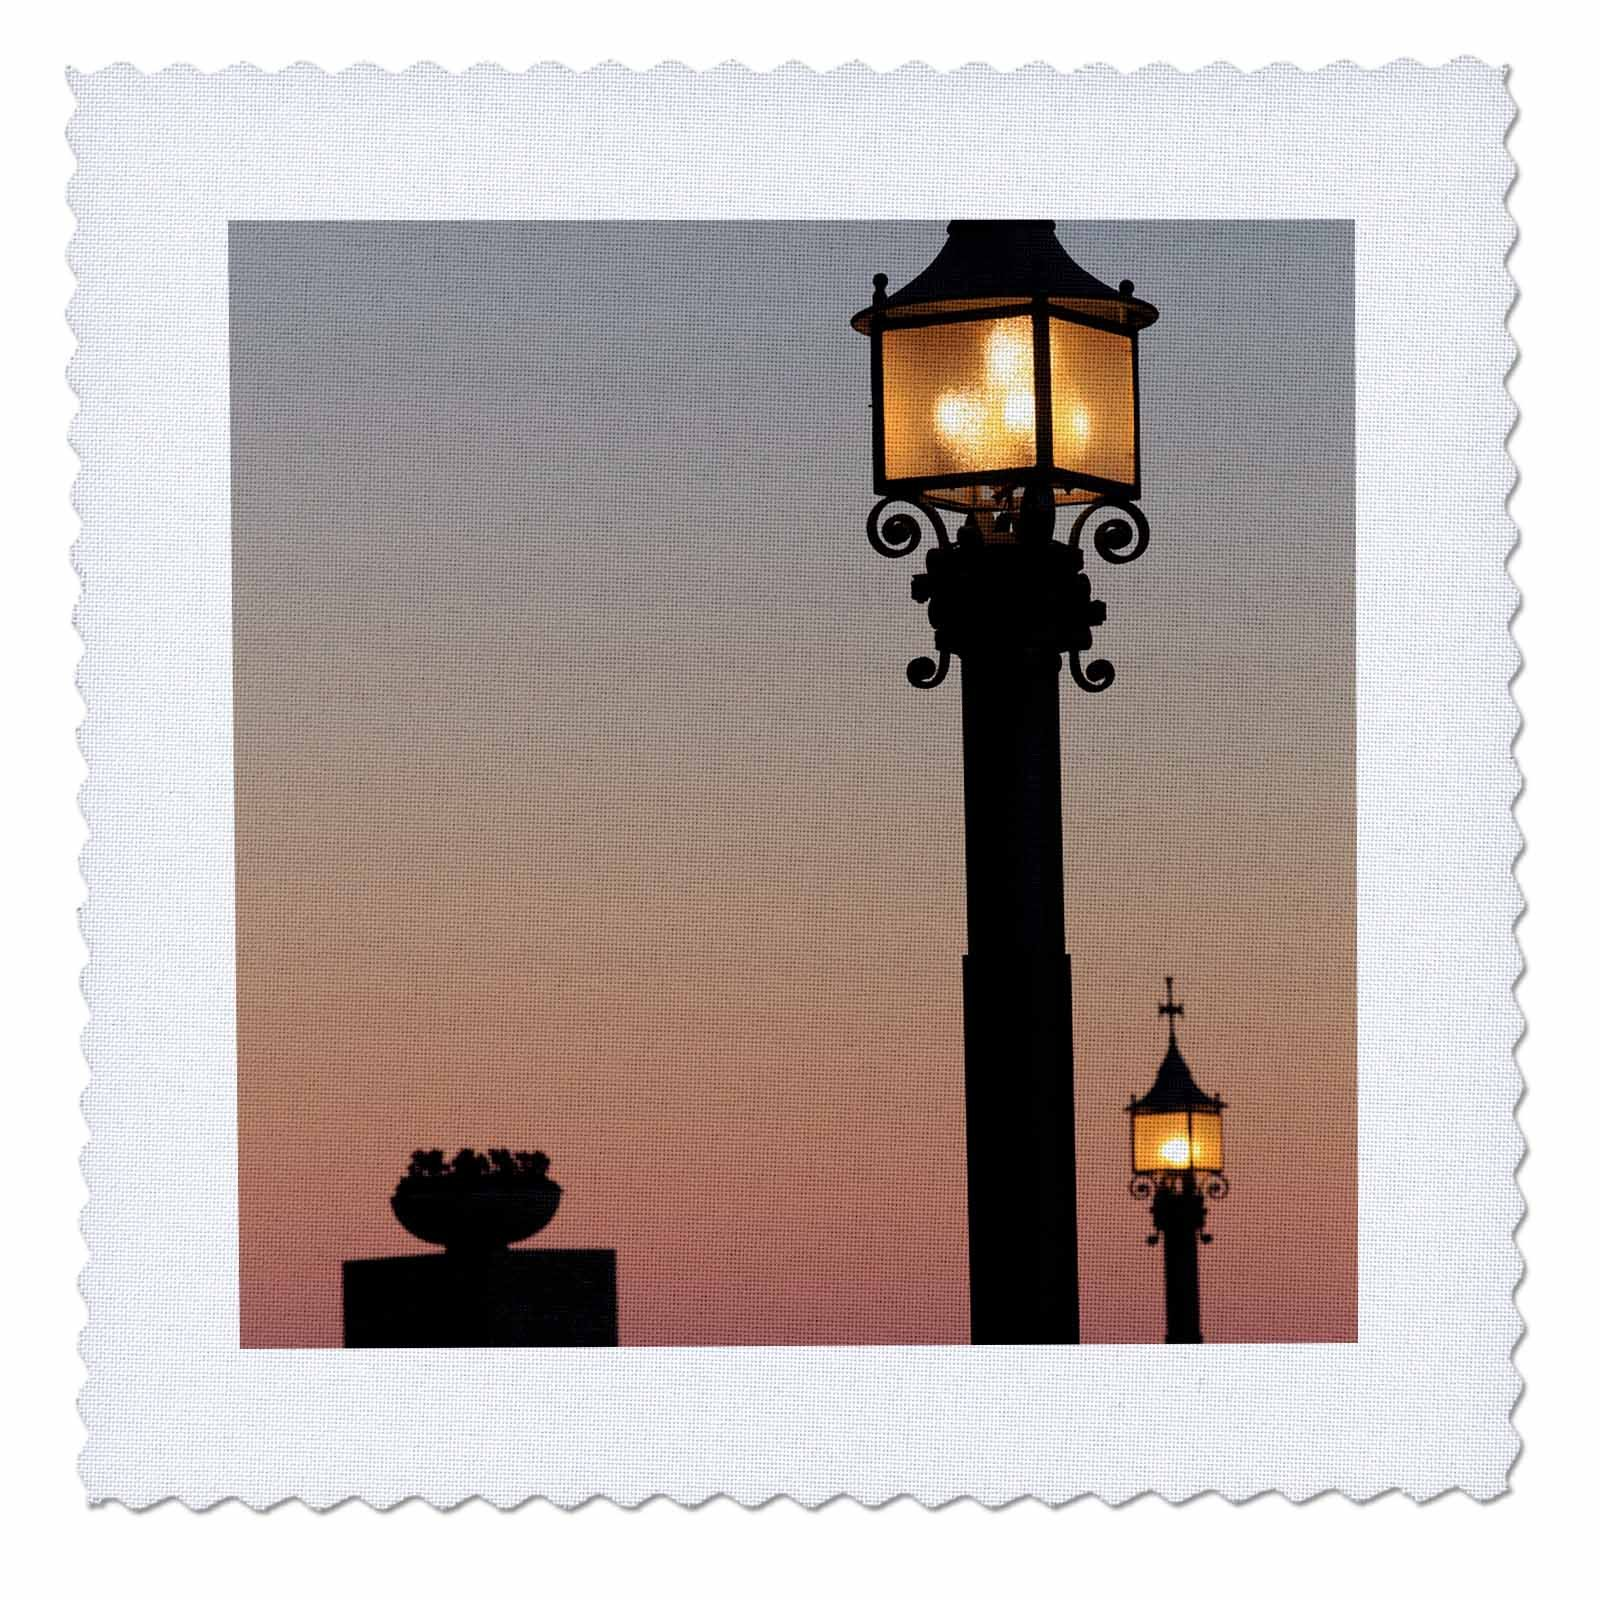 3dRose Danita Delimont - Lamps - Lanterns alight at sunset at Montserrat, Barcelona, Spain - 16x16 inch quilt square (qs_257871_6) by 3dRose